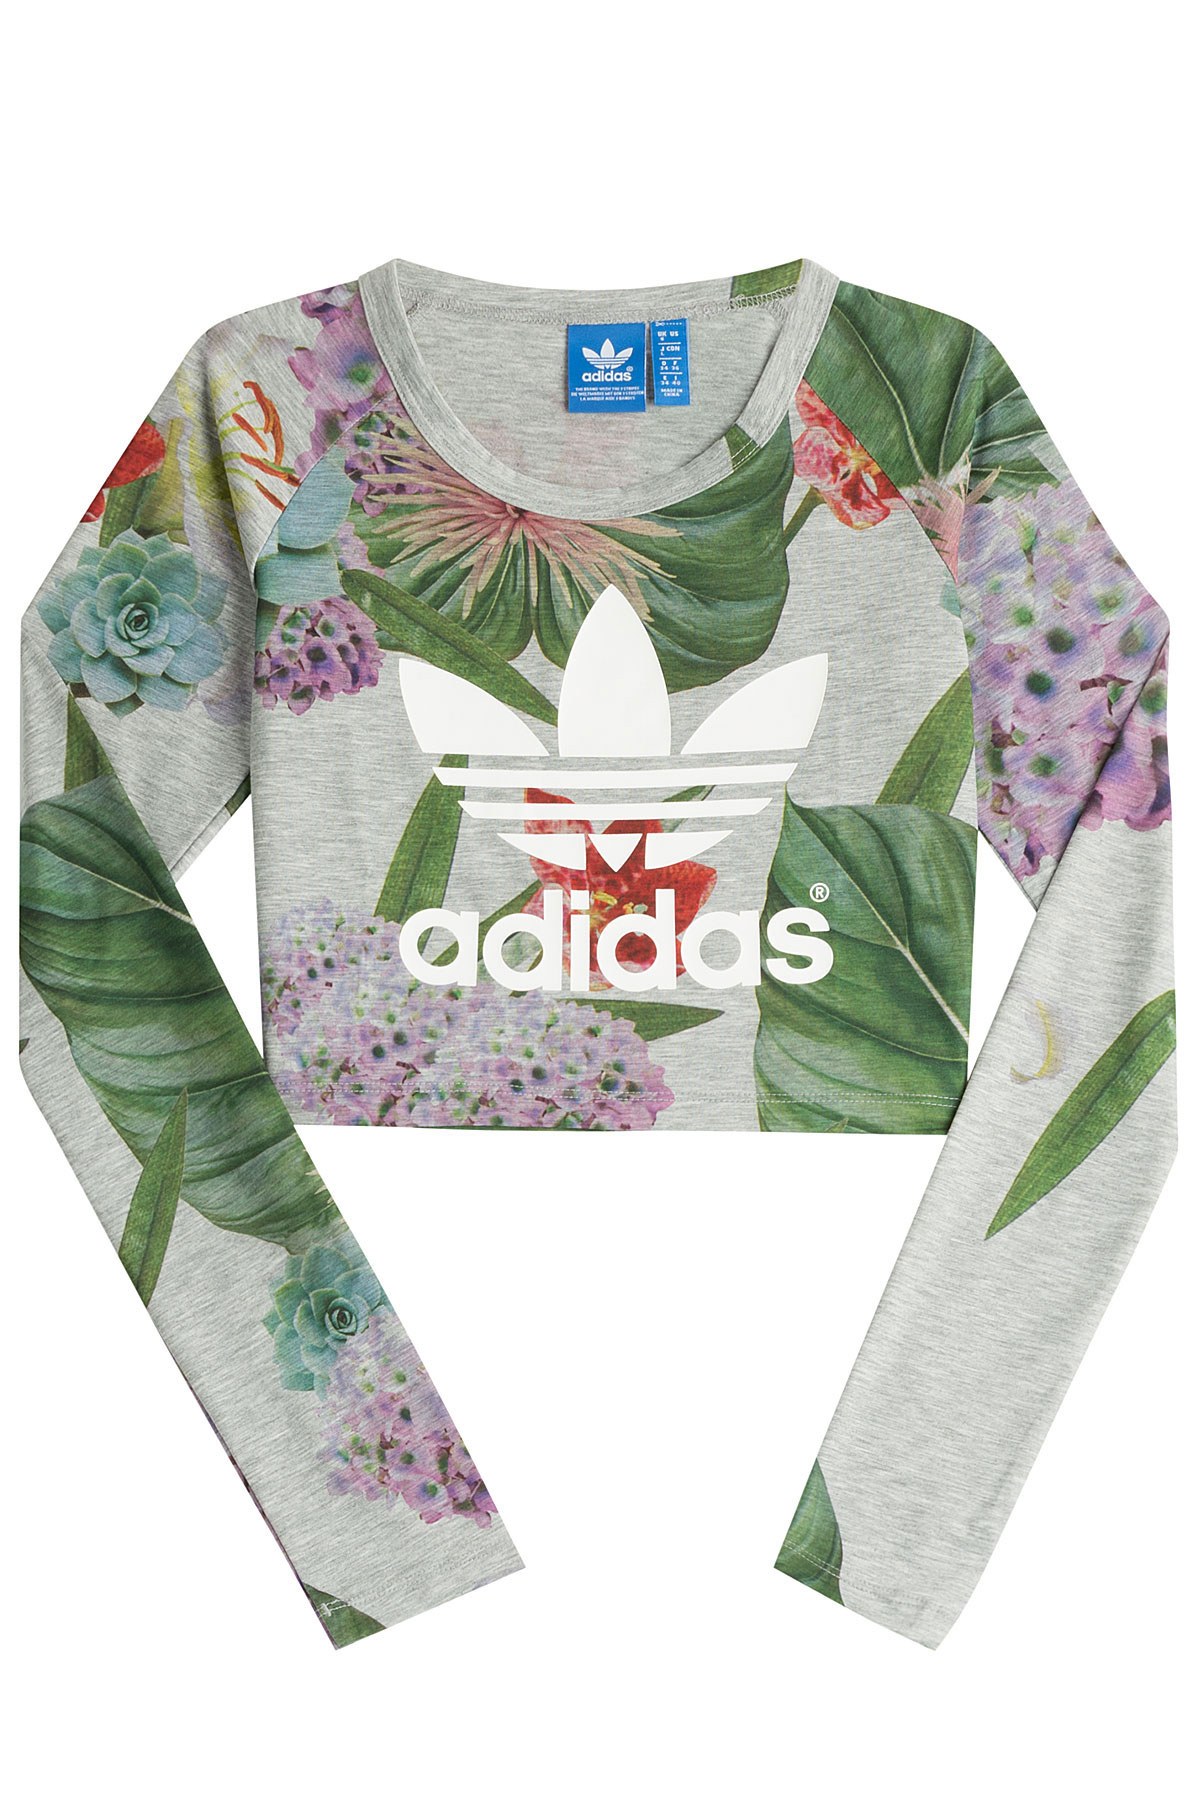 a104677e59a adidas Originals Floral Print Cropped T-shirt With Logo - Multicolor ...